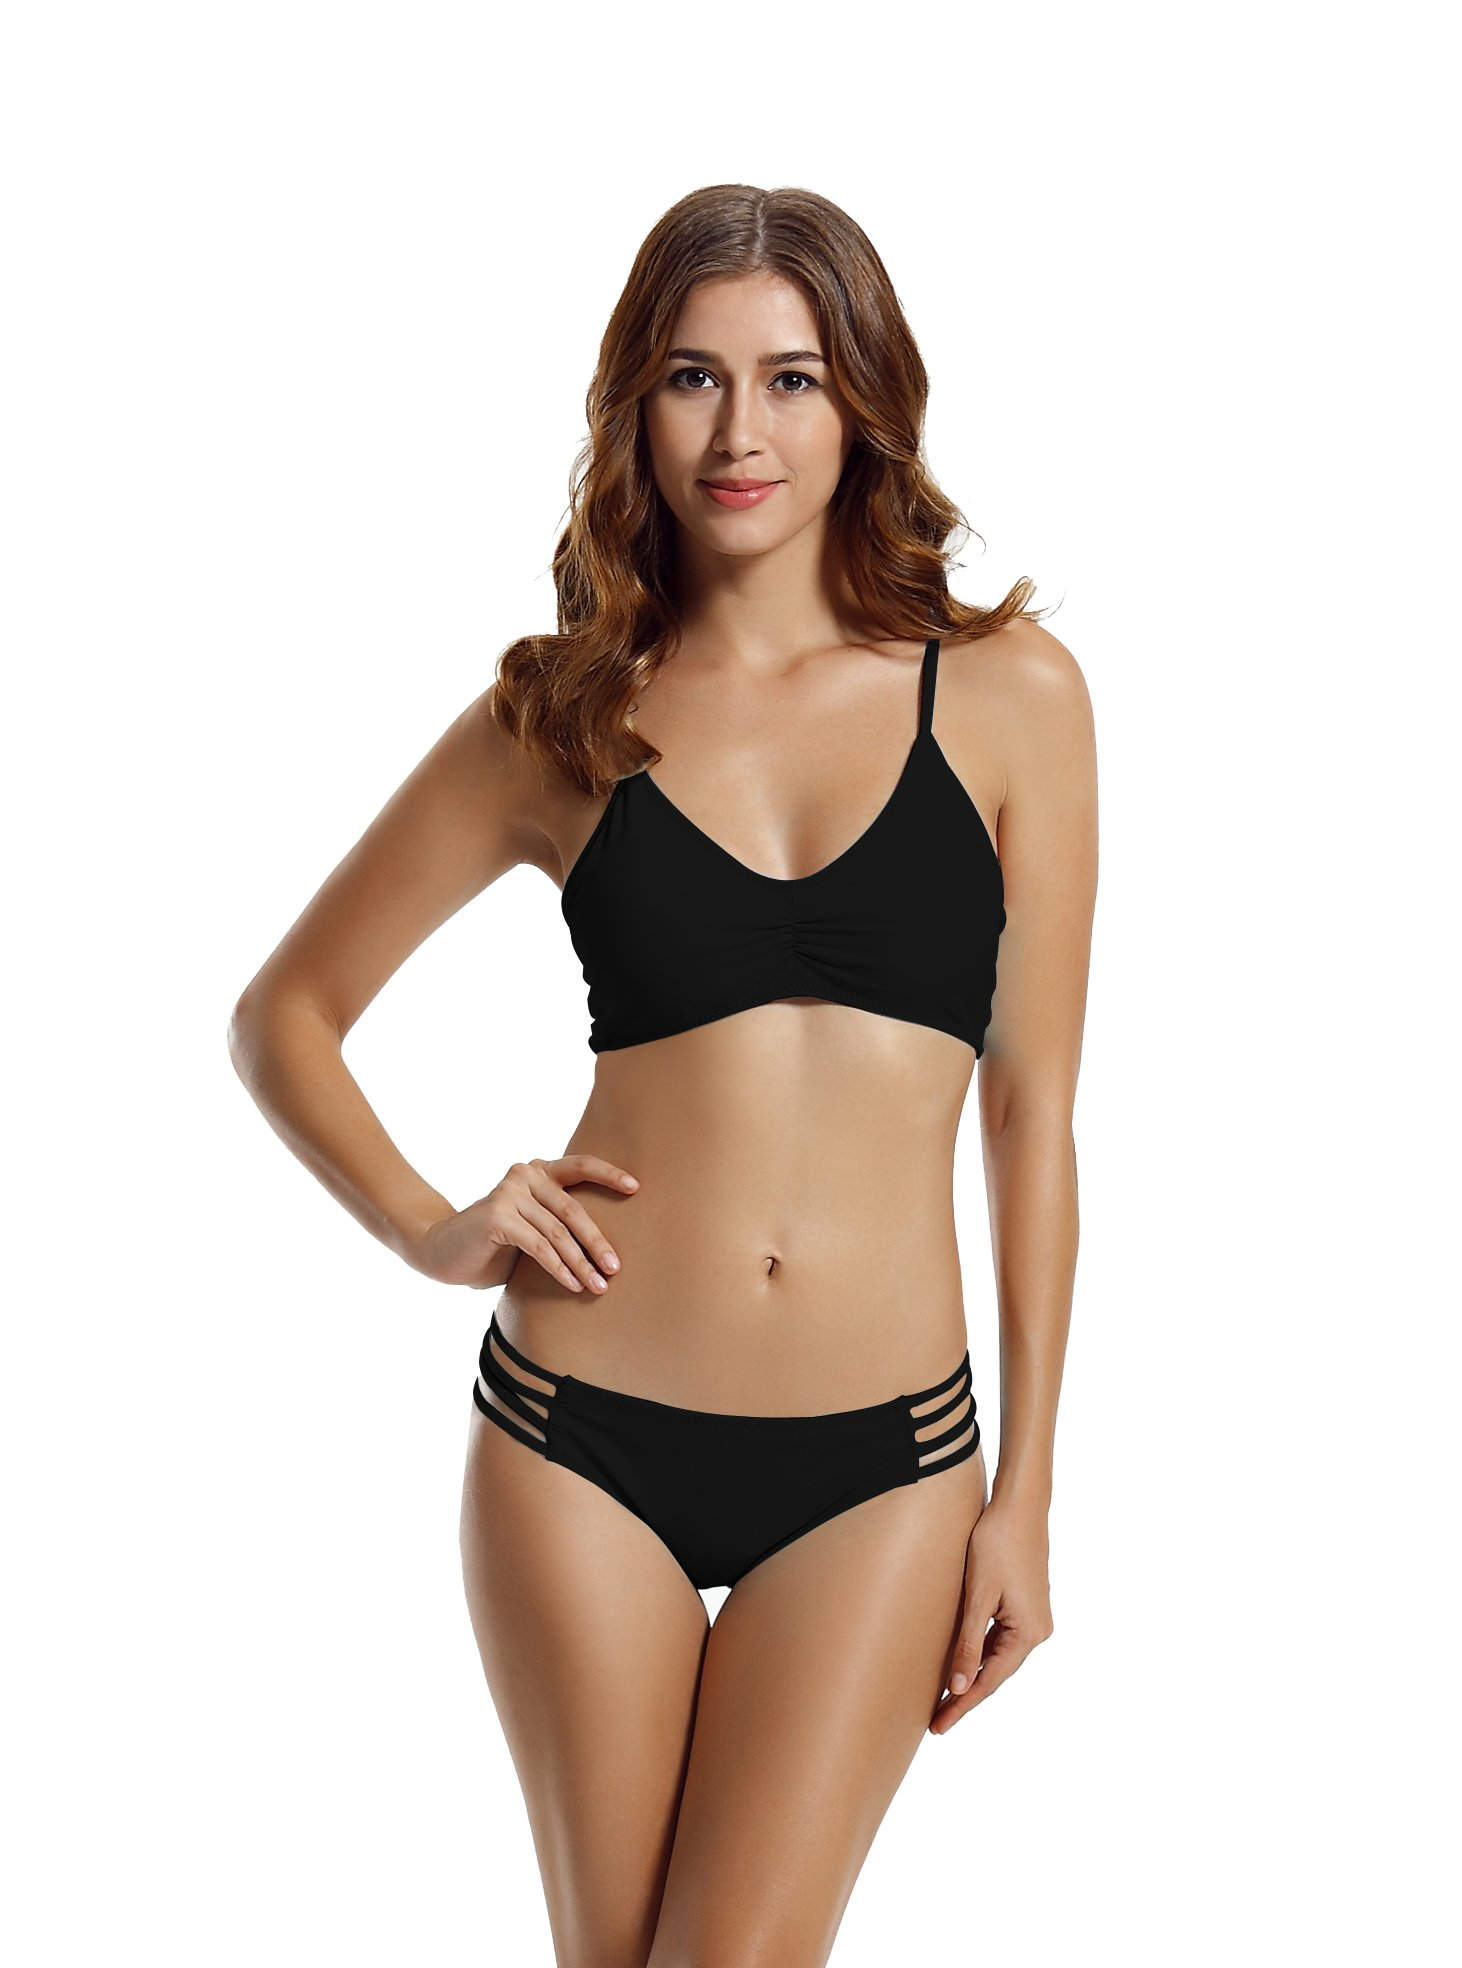 702e779423 zeraca Women s Strap Side Bottom Halter Racerback Bikini Bathing Suits  (FBA) product image